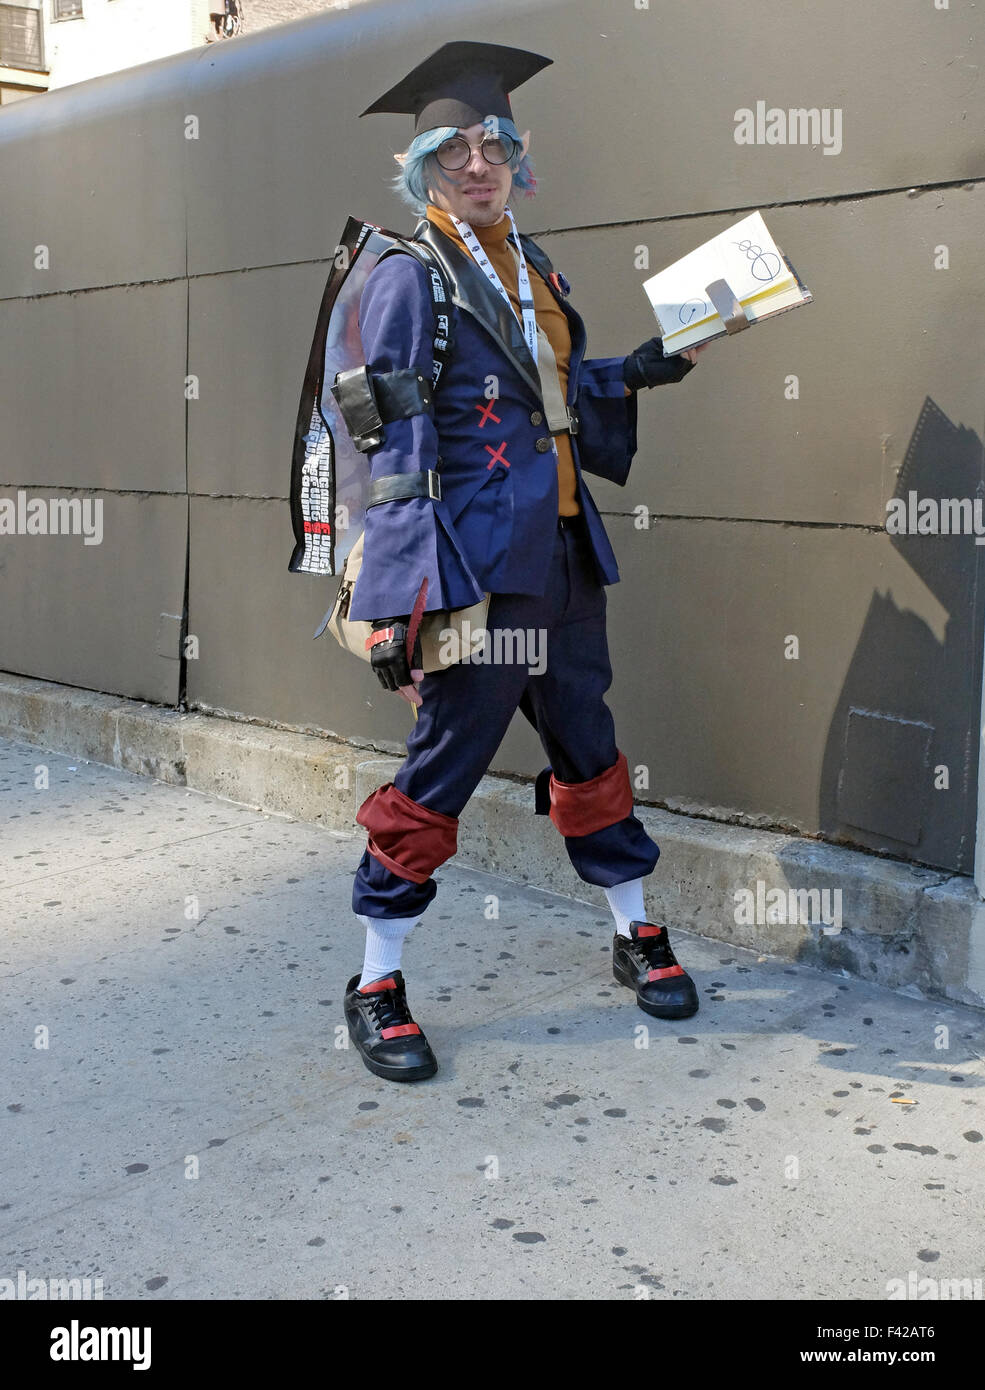 An  attendee of Comic Con in New York dresses as a Scholar, a character from Final Fantasy - Stock Image